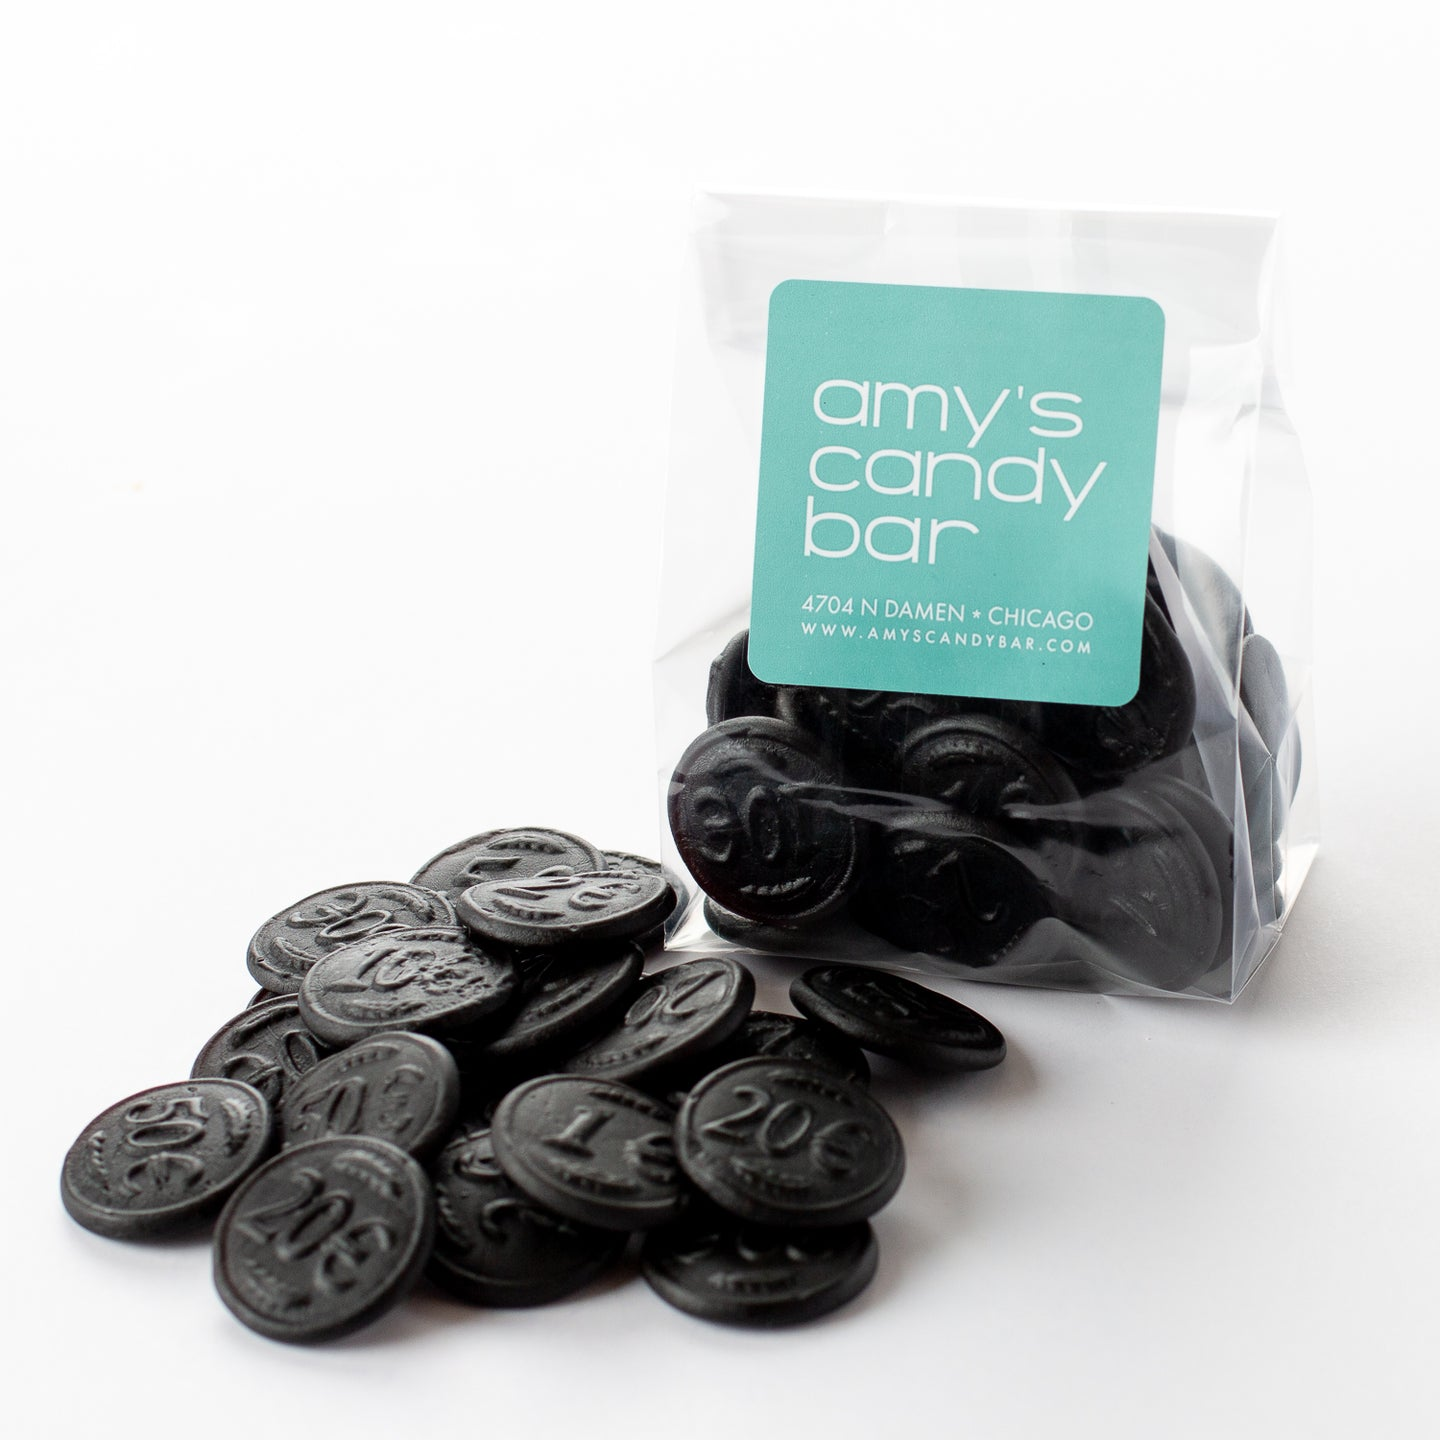 Money Salt Licorice Amy's Candy Bar Chicago